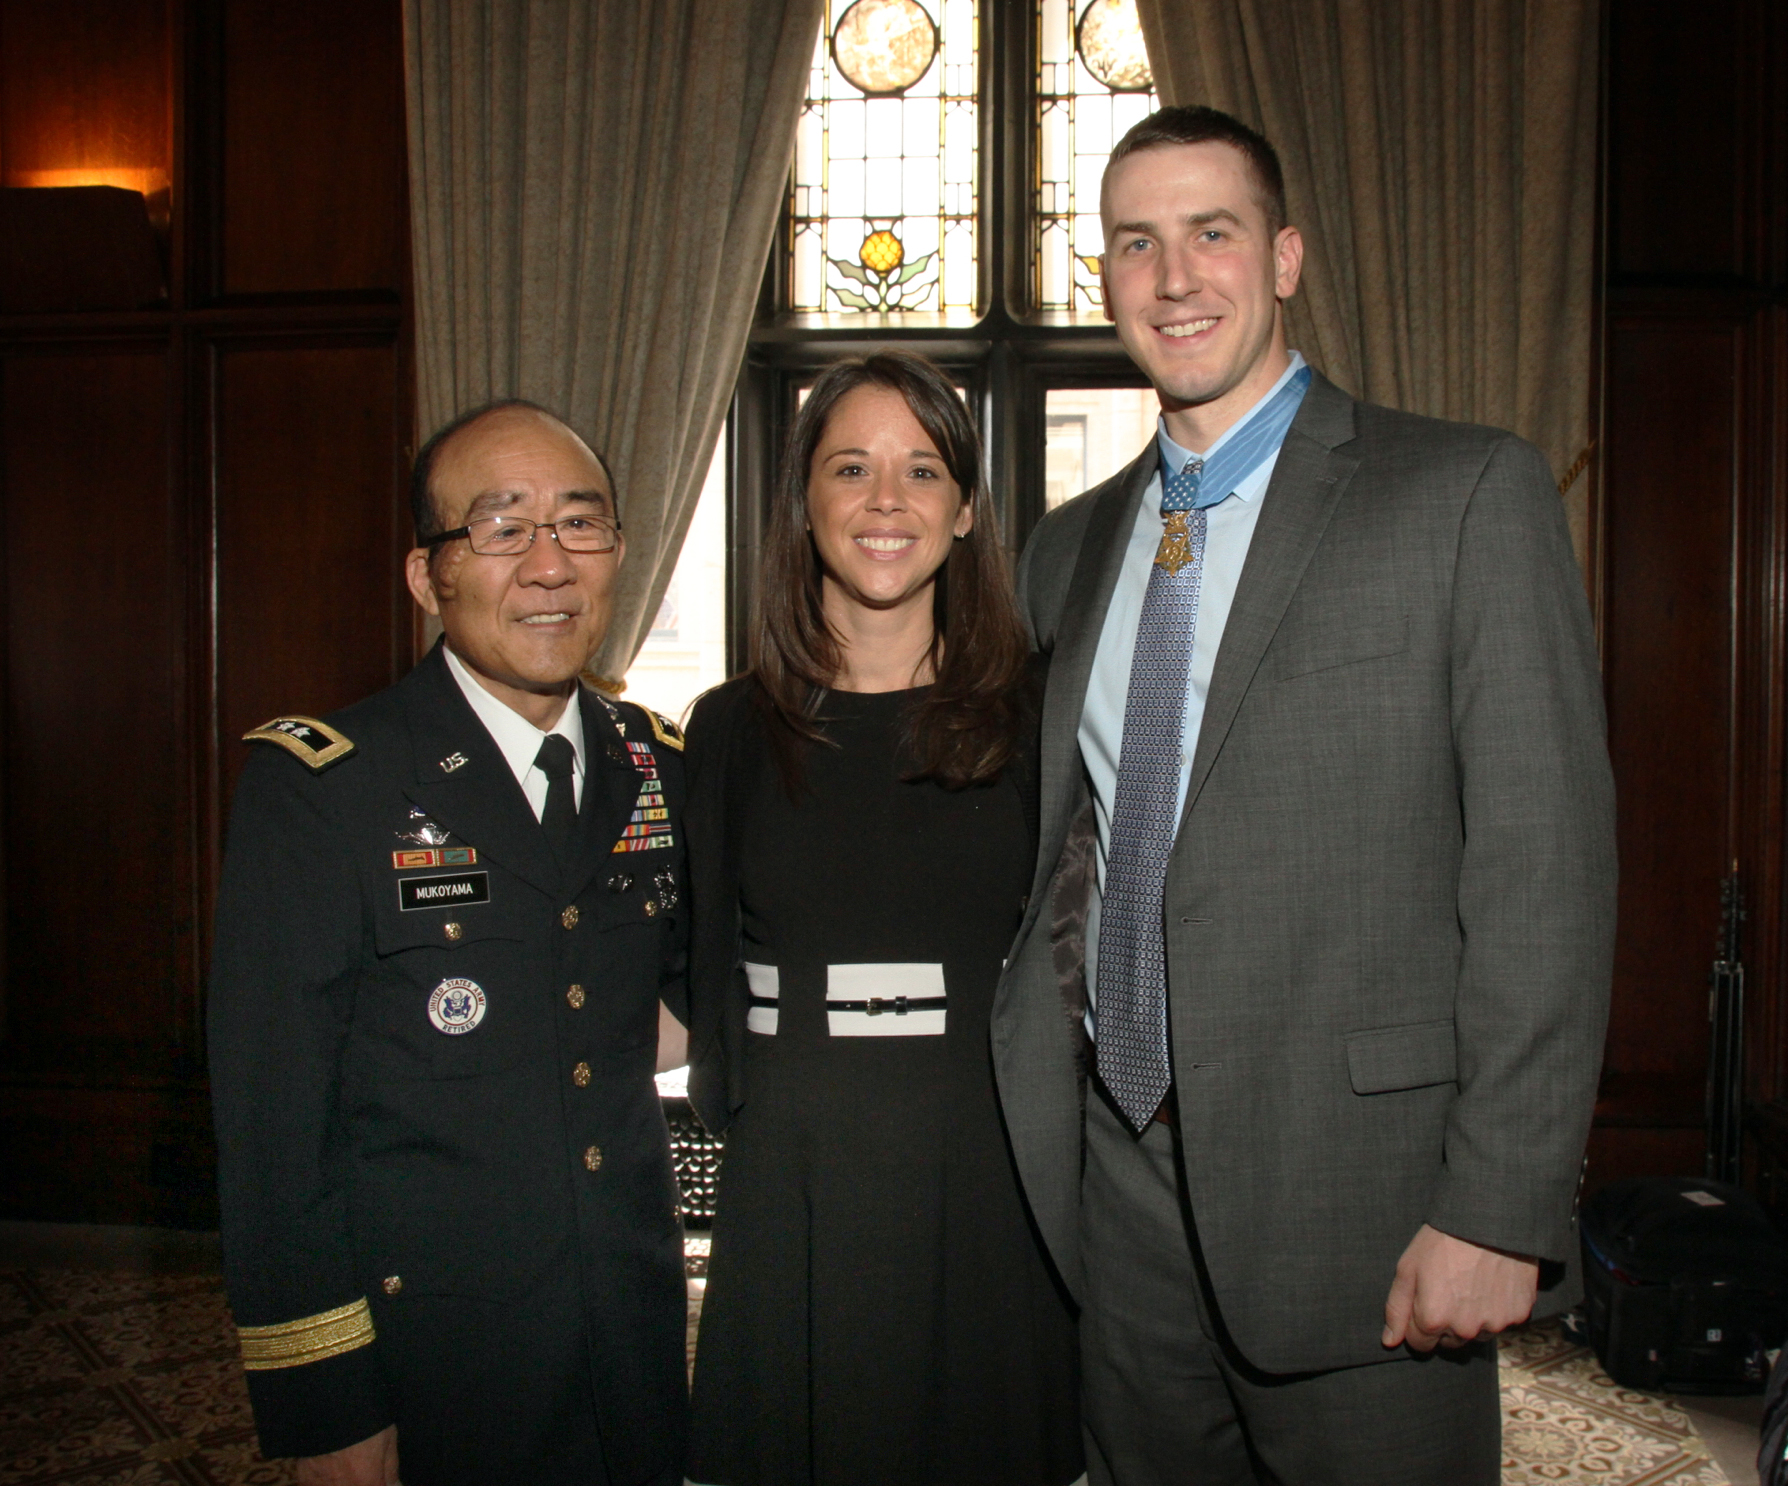 Medal of Honor recipient Master Sgt. Ryan Pitts